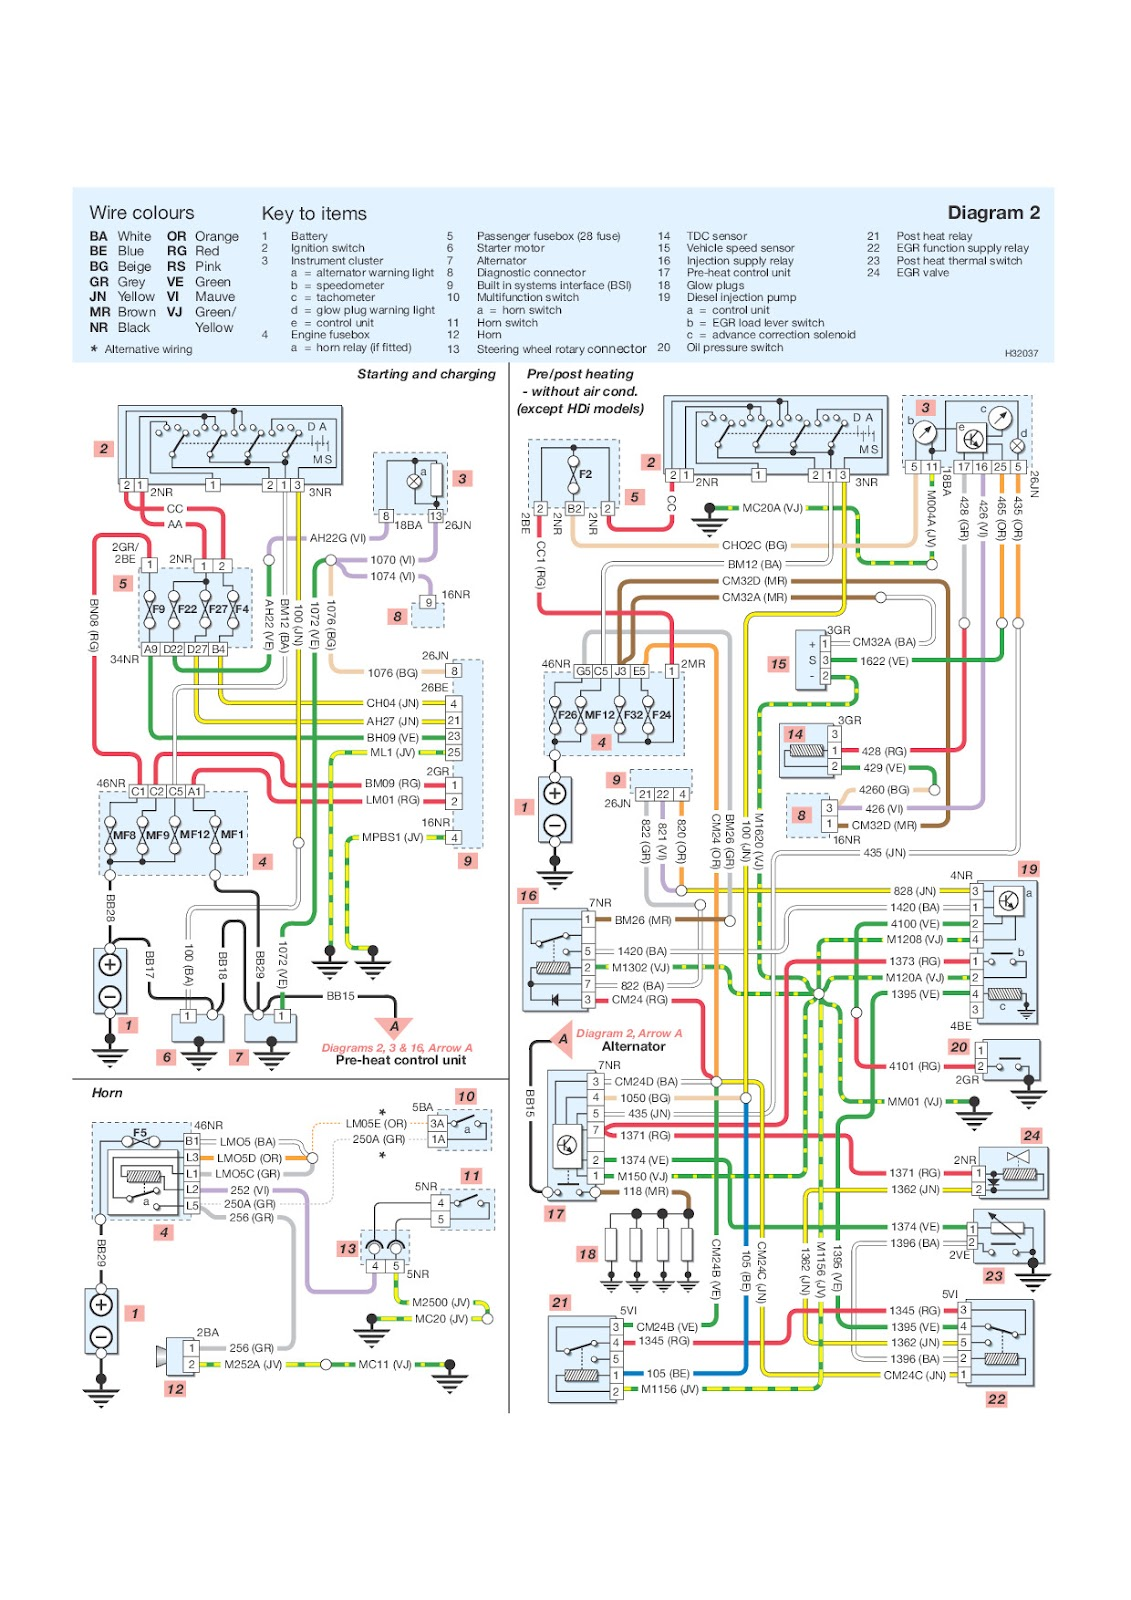 your wiring diagrams source peugeot 206 starting charging horn rh allwiringdiagrams blogspot com peugeot 206 bsi wiring diagram peugeot 206 bsi wiring